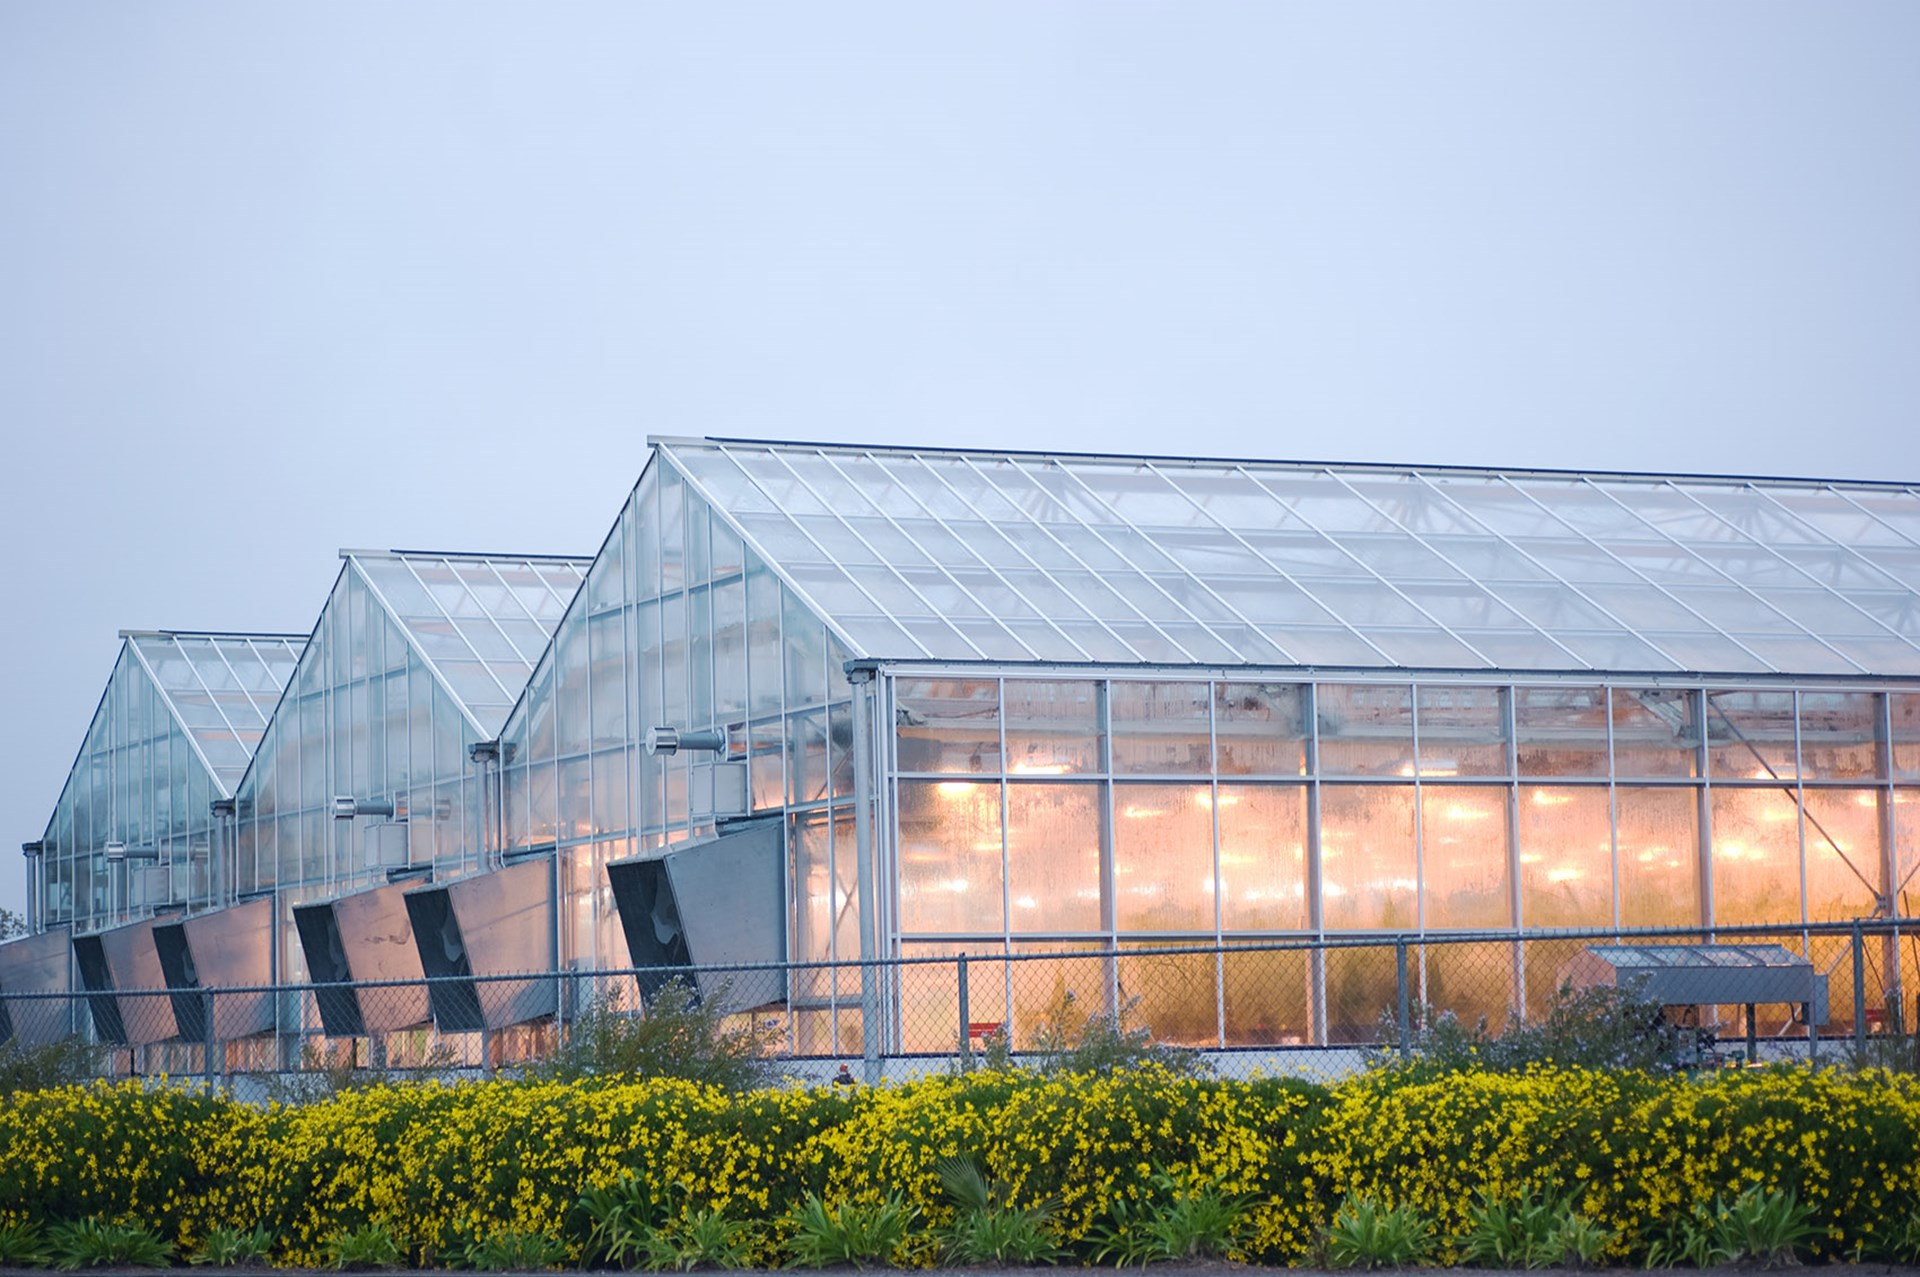 Greenhouses_AdobeStock_25668621.jpg